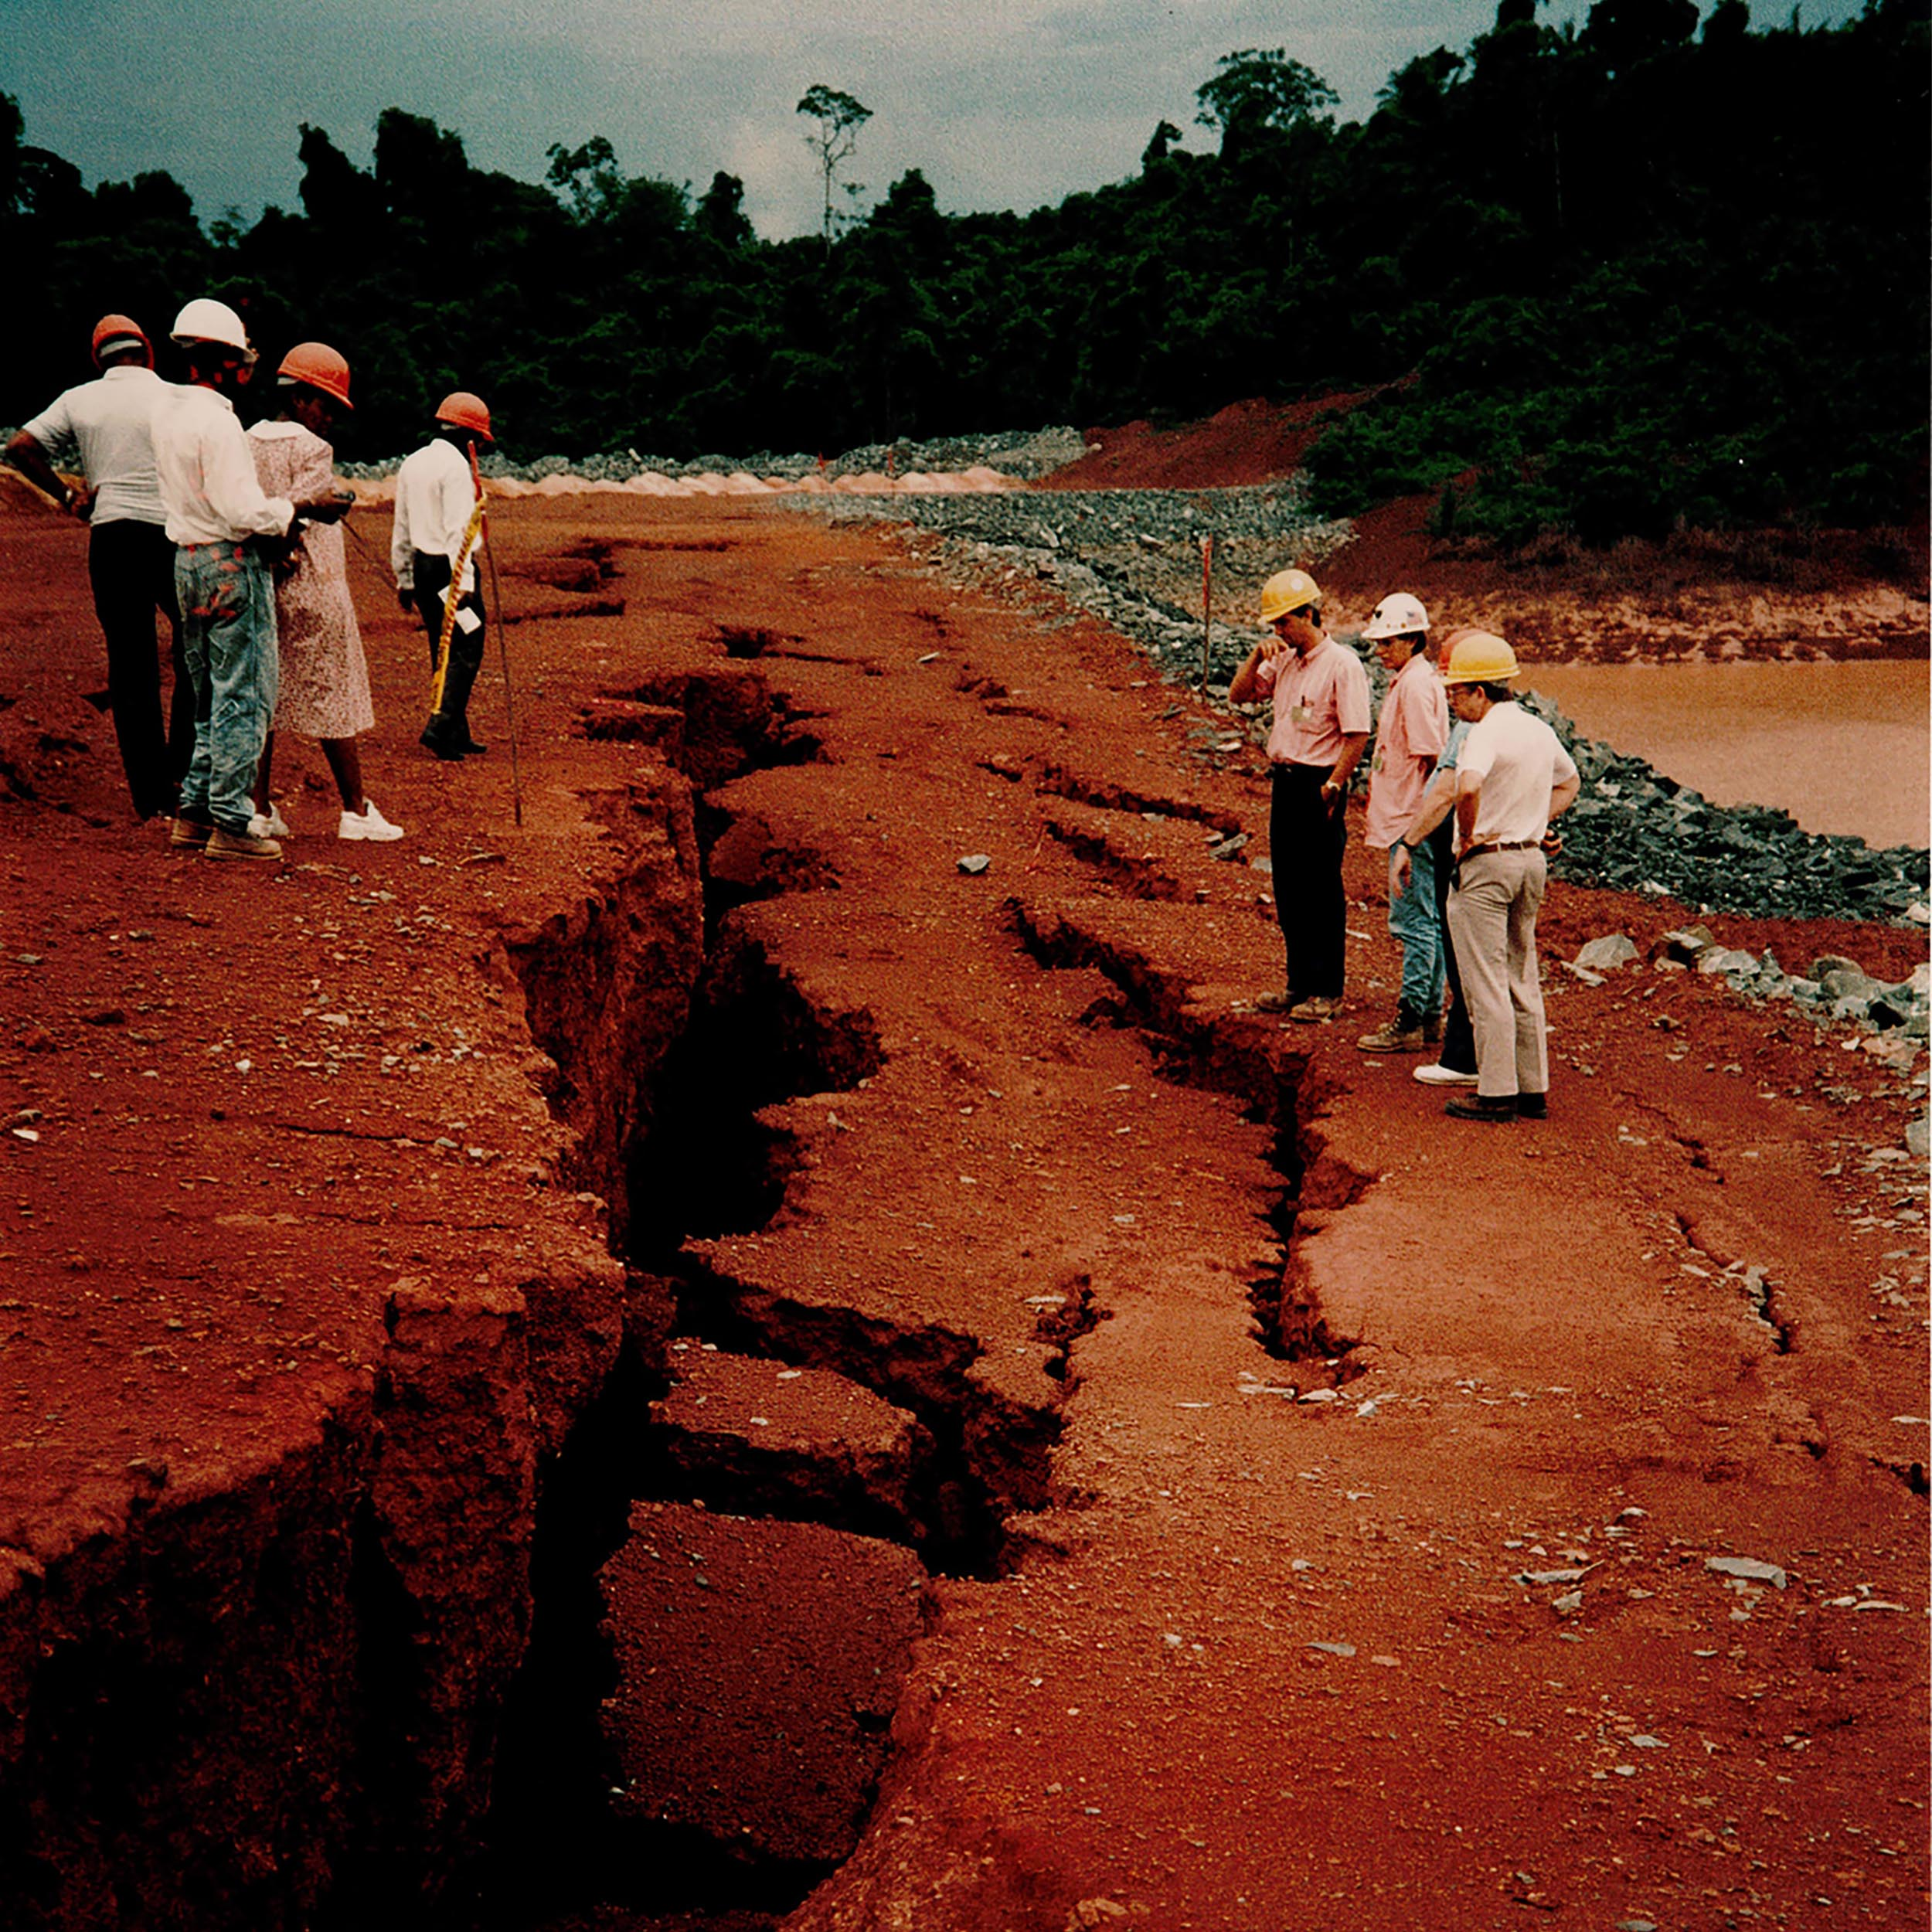 At the Omai Mine in Guyana, 3.4 million cubic meters of cyanide rich mine waste was released when a tailings dam failed.